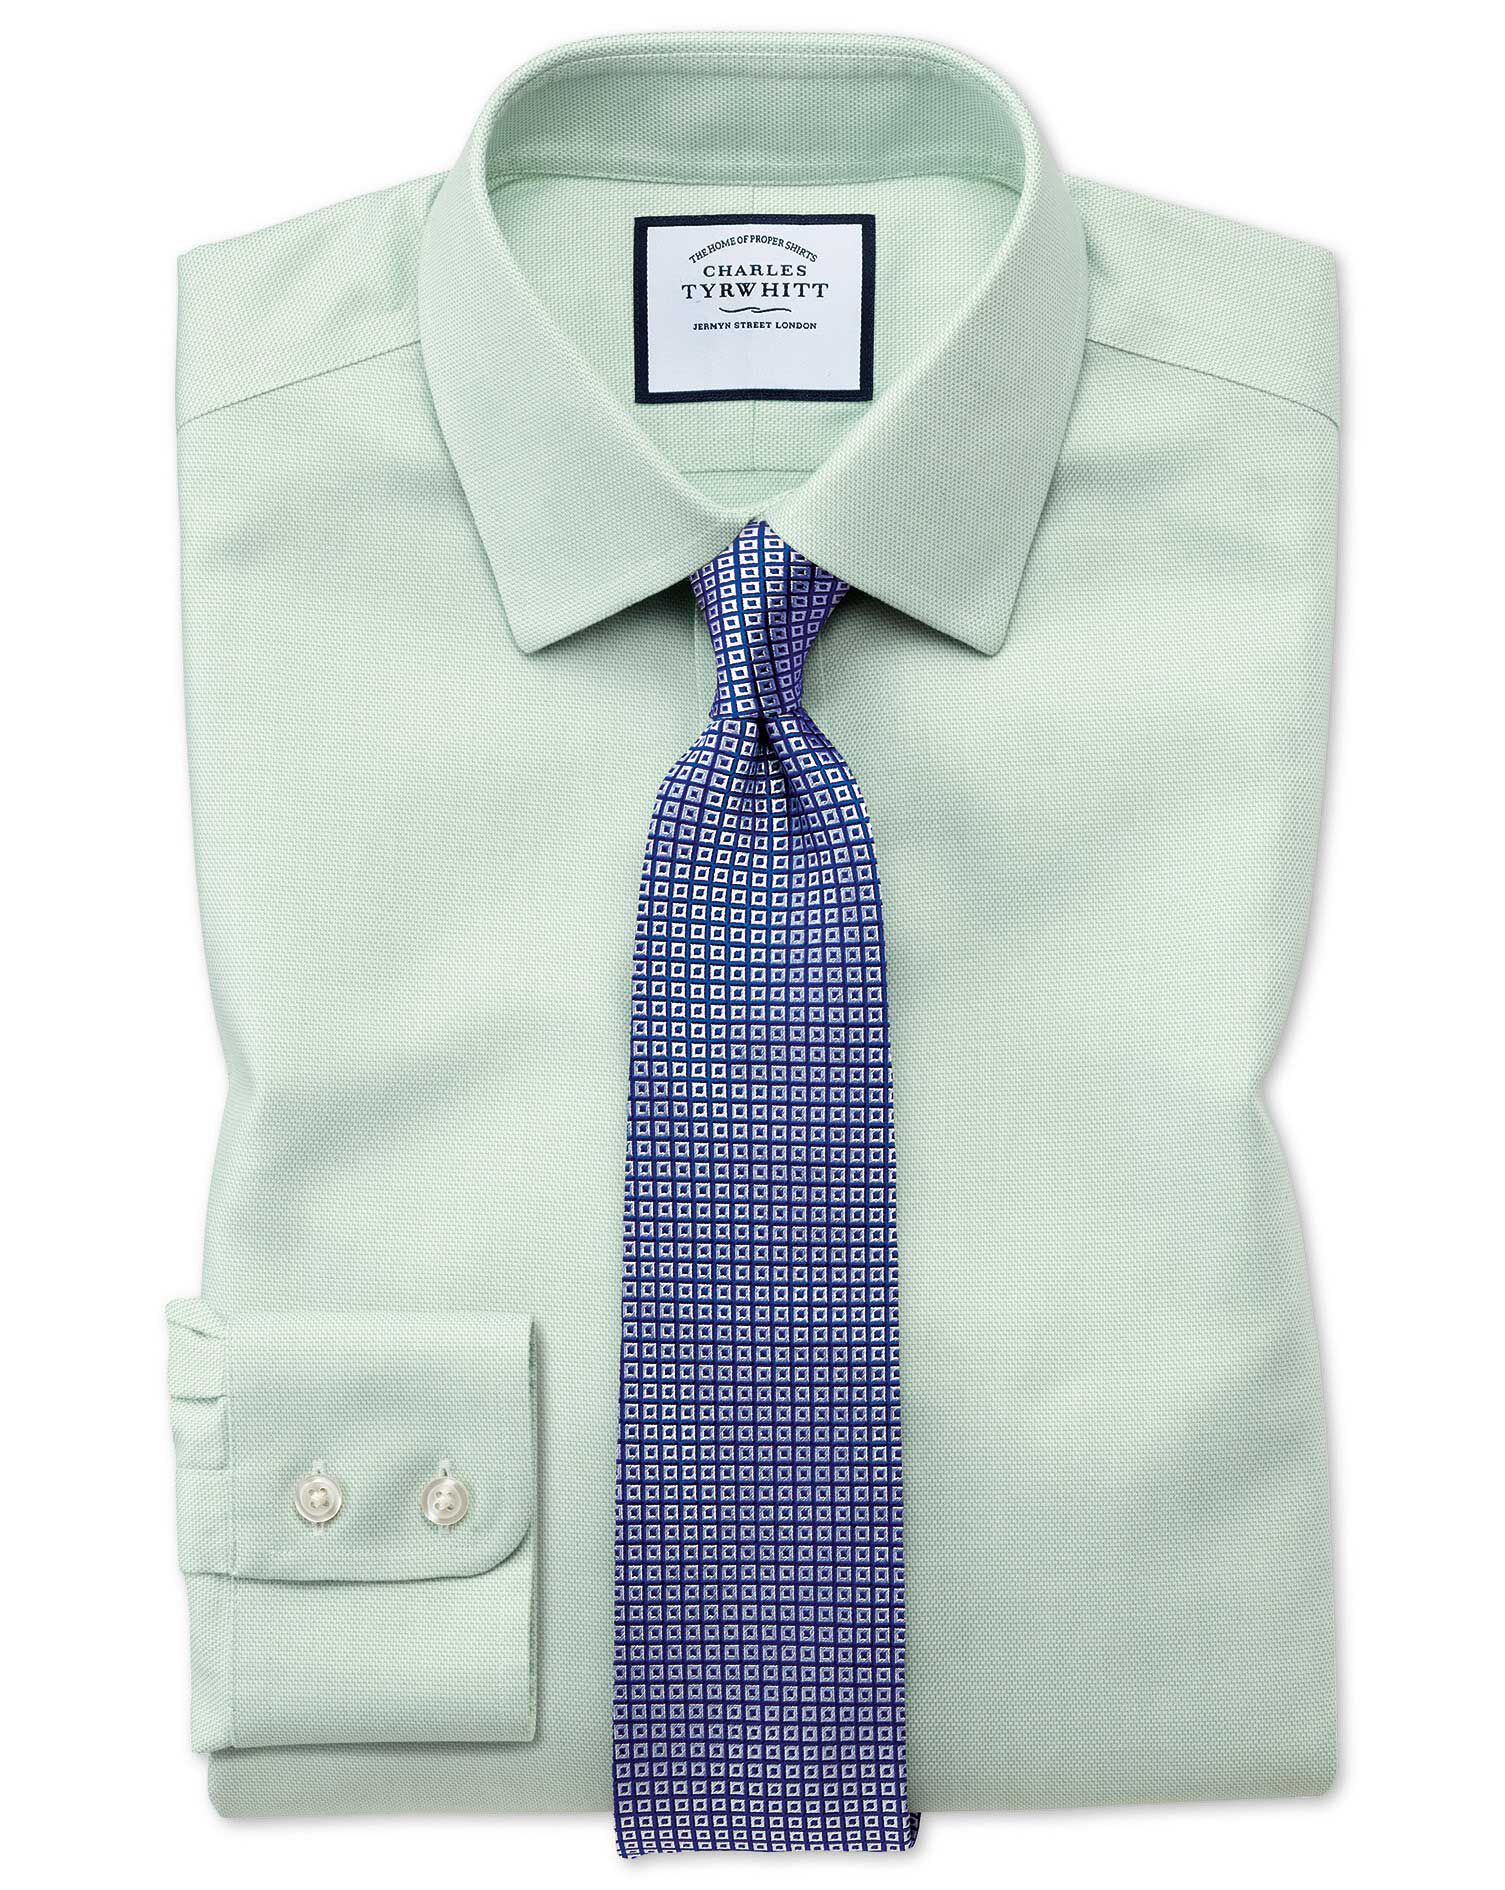 Classic Fit Non-Iron Step Weave Green Cotton Formal Shirt Double Cuff Size 20/37 by Charles Tyrwhitt